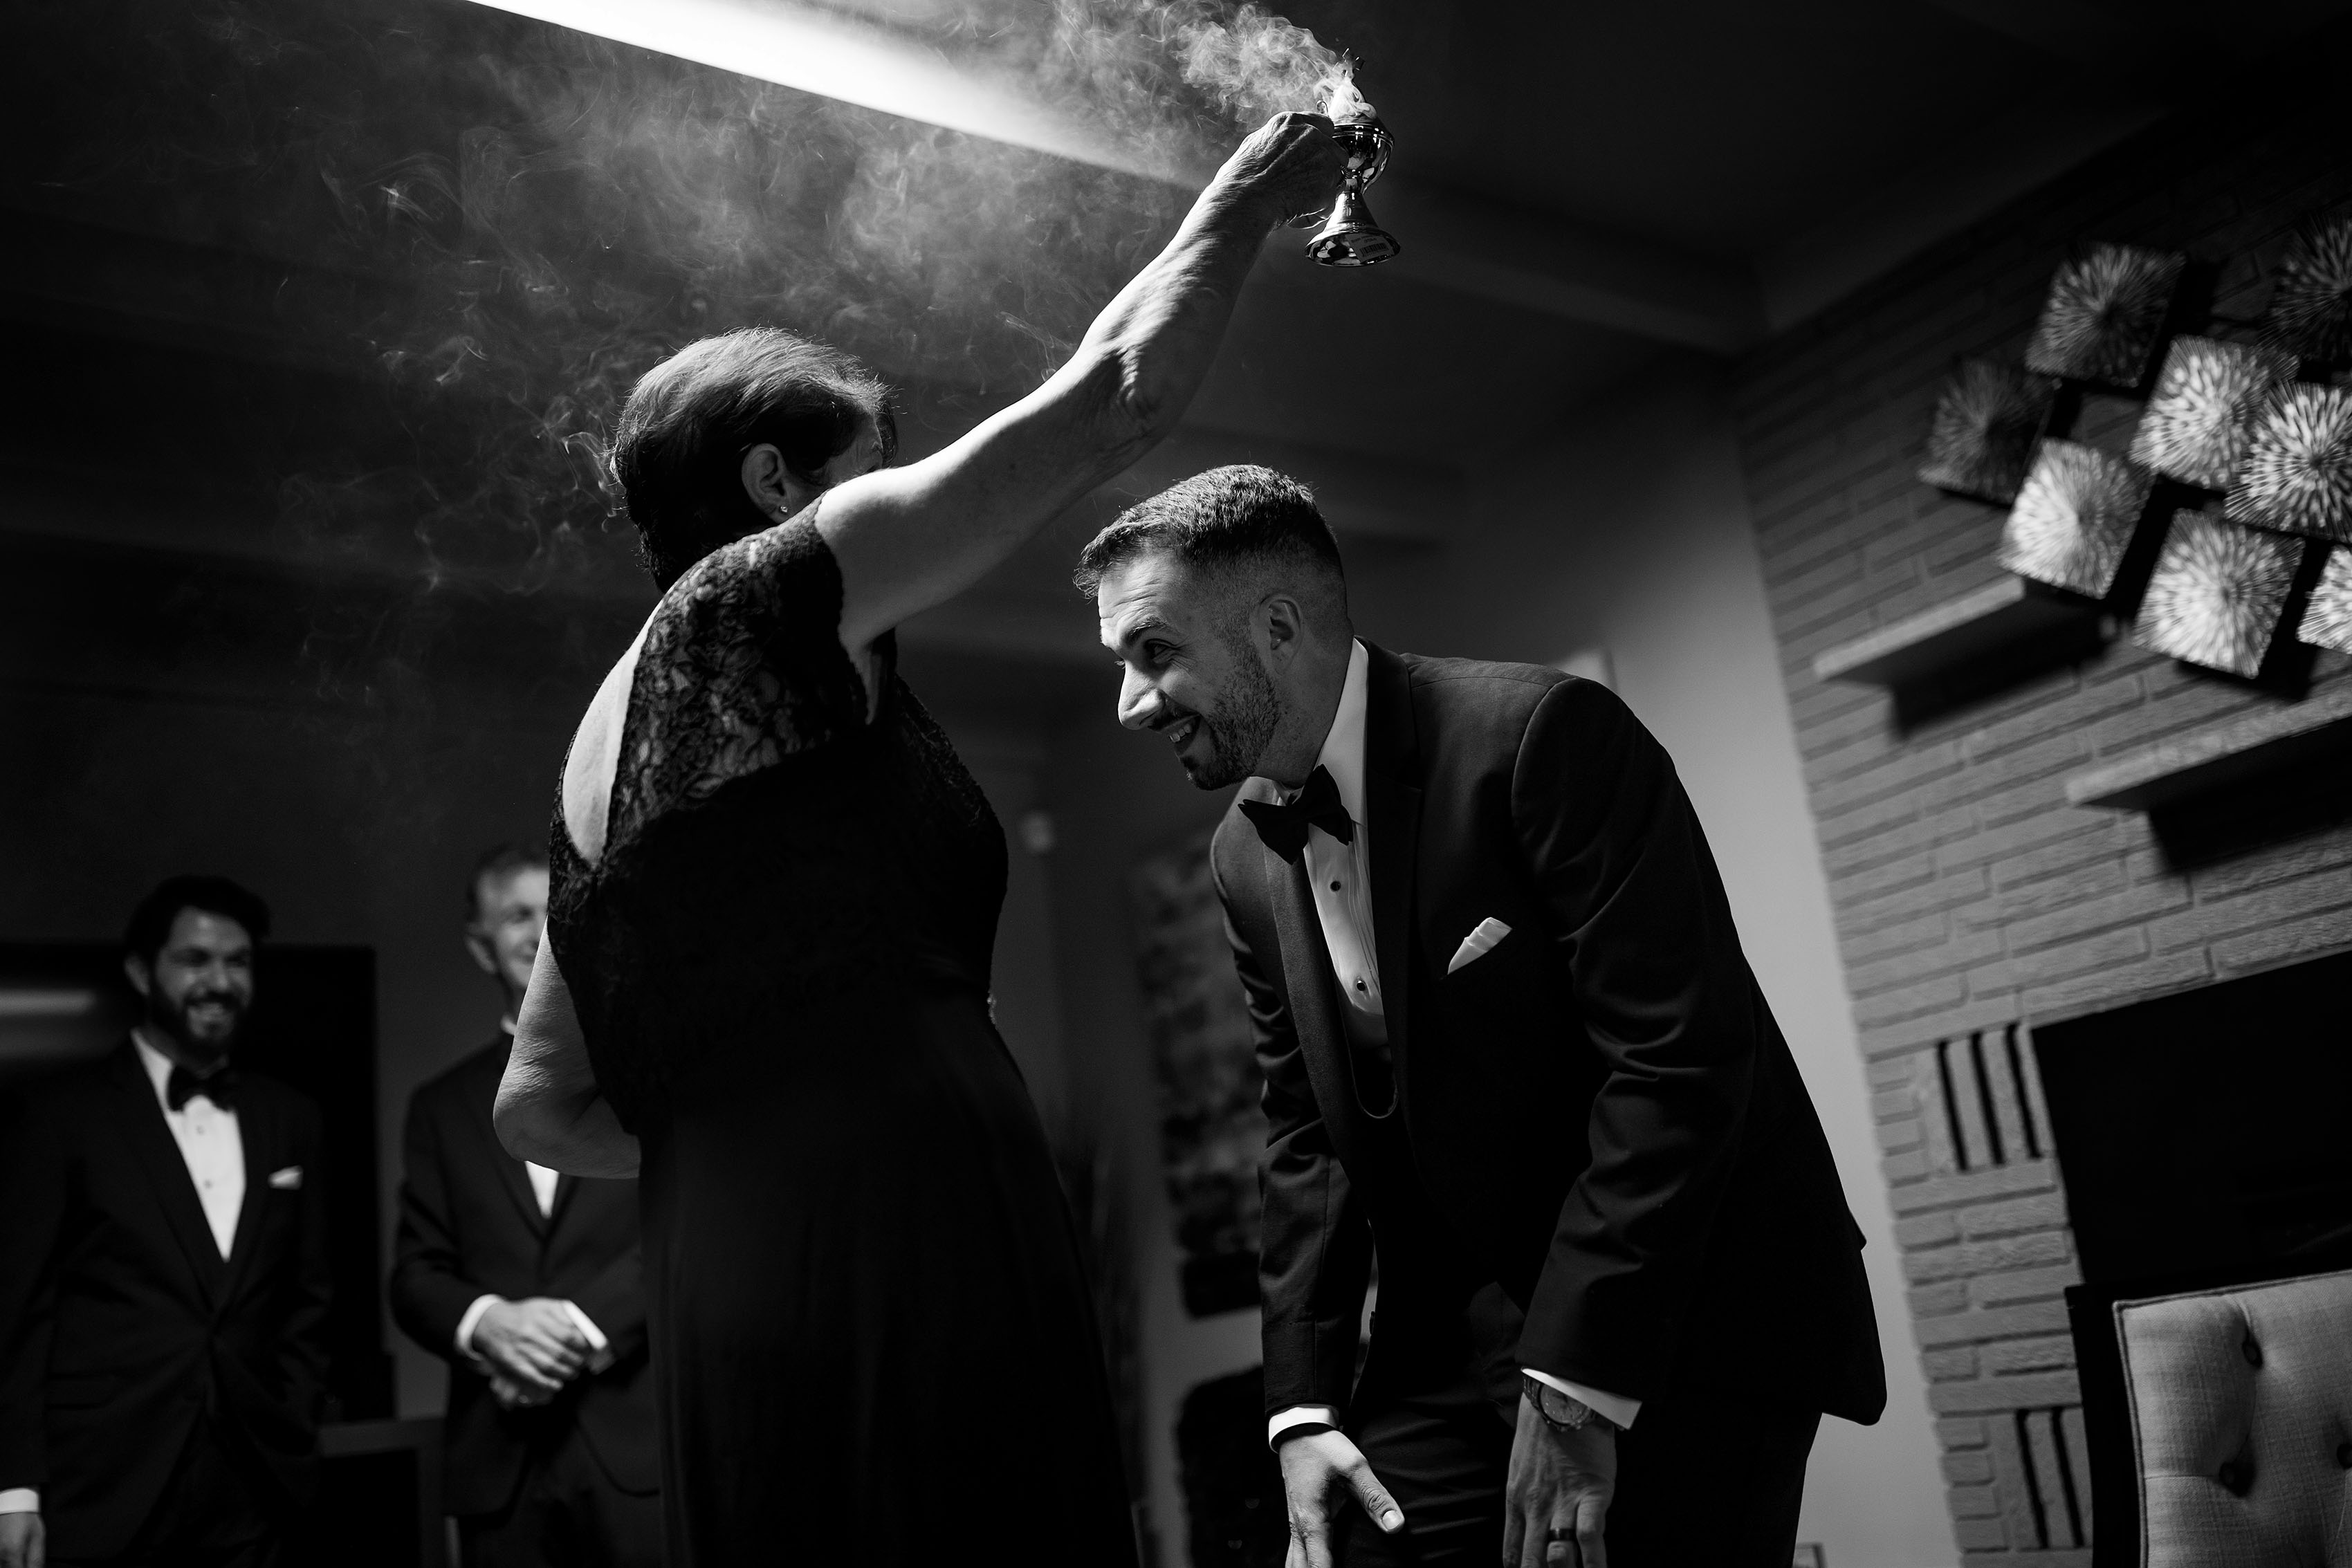 The groom's mother waves smoke during cypriot wedding traditions as the groom gets ready for the wedding